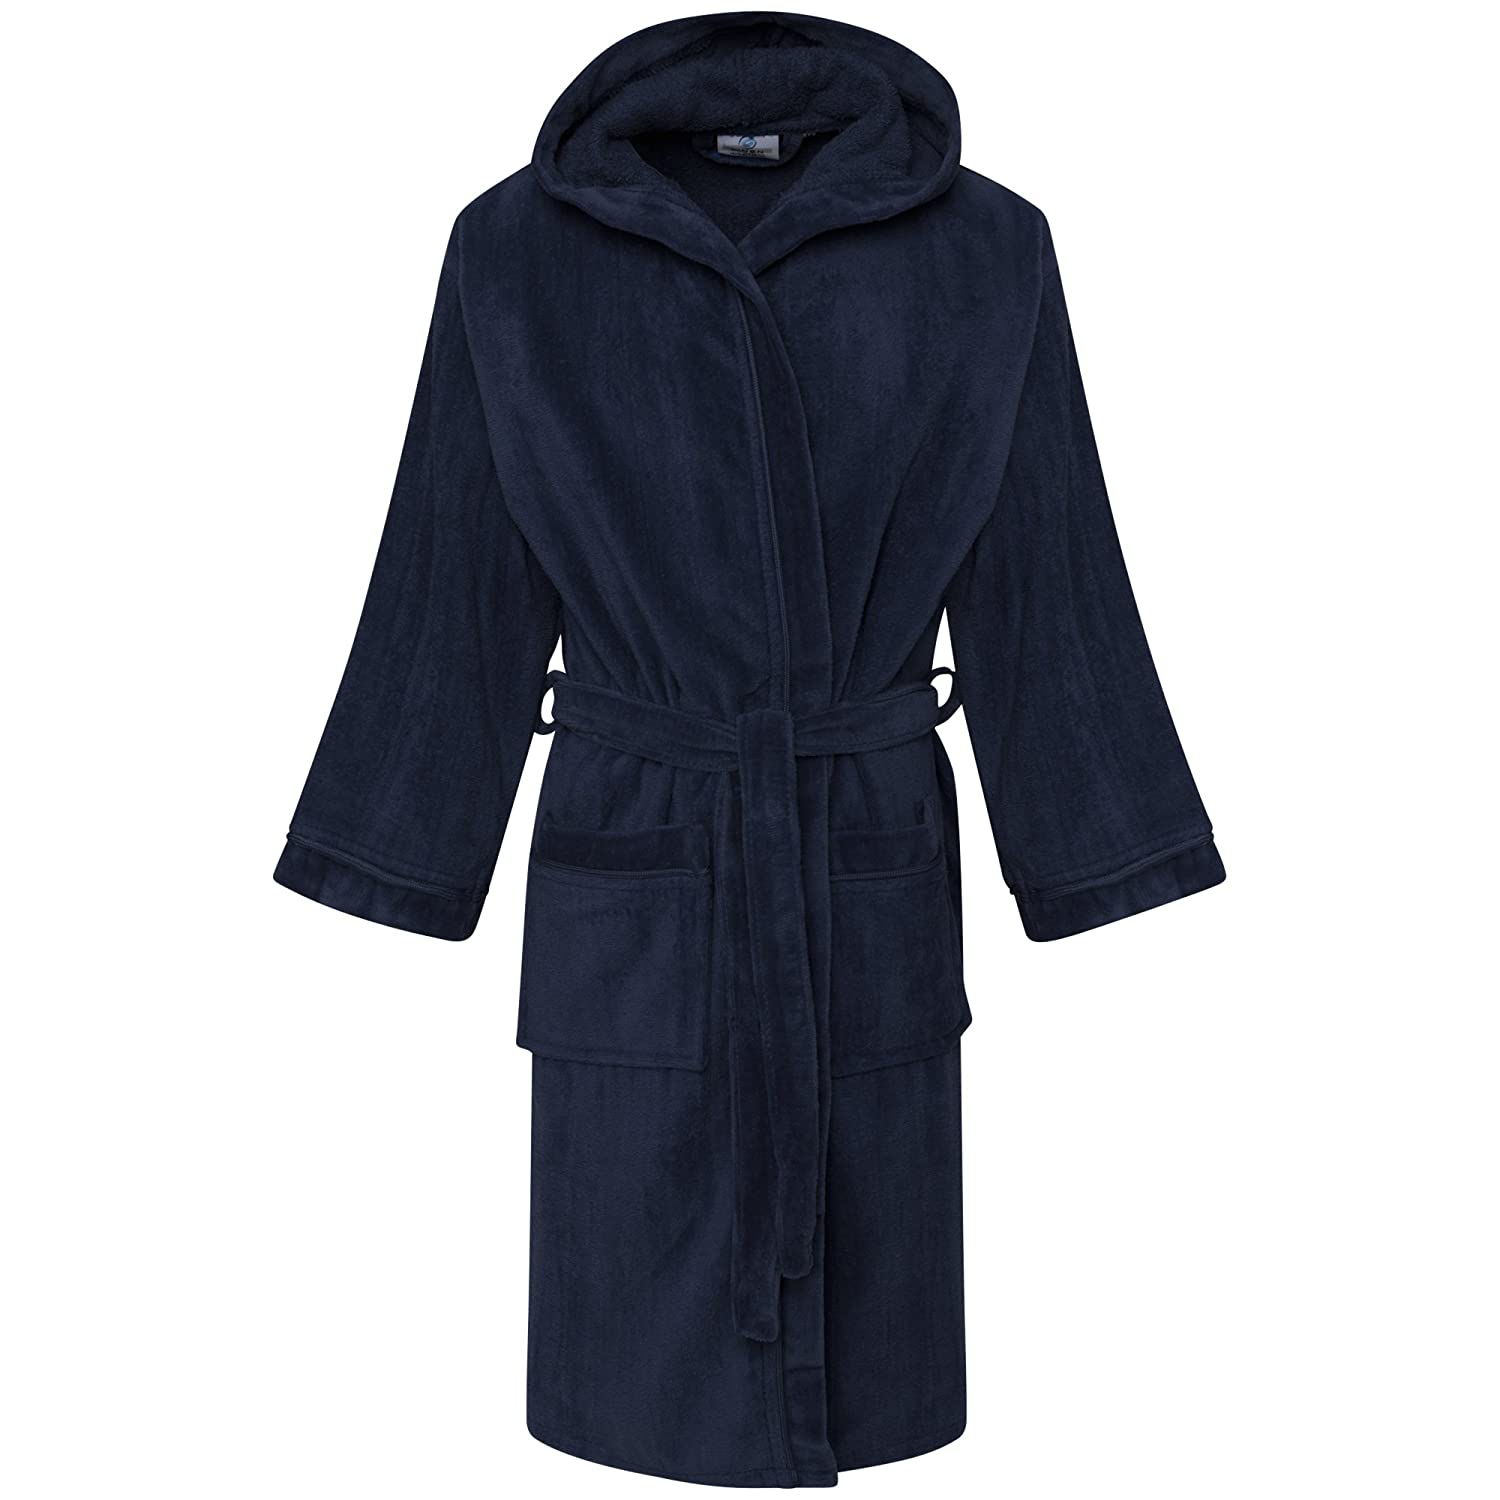 Linen Galaxy Kids Boys Girls Velour Hooded Bathrobes Terry Towel Egyptian Cotton Material Dressing Gown